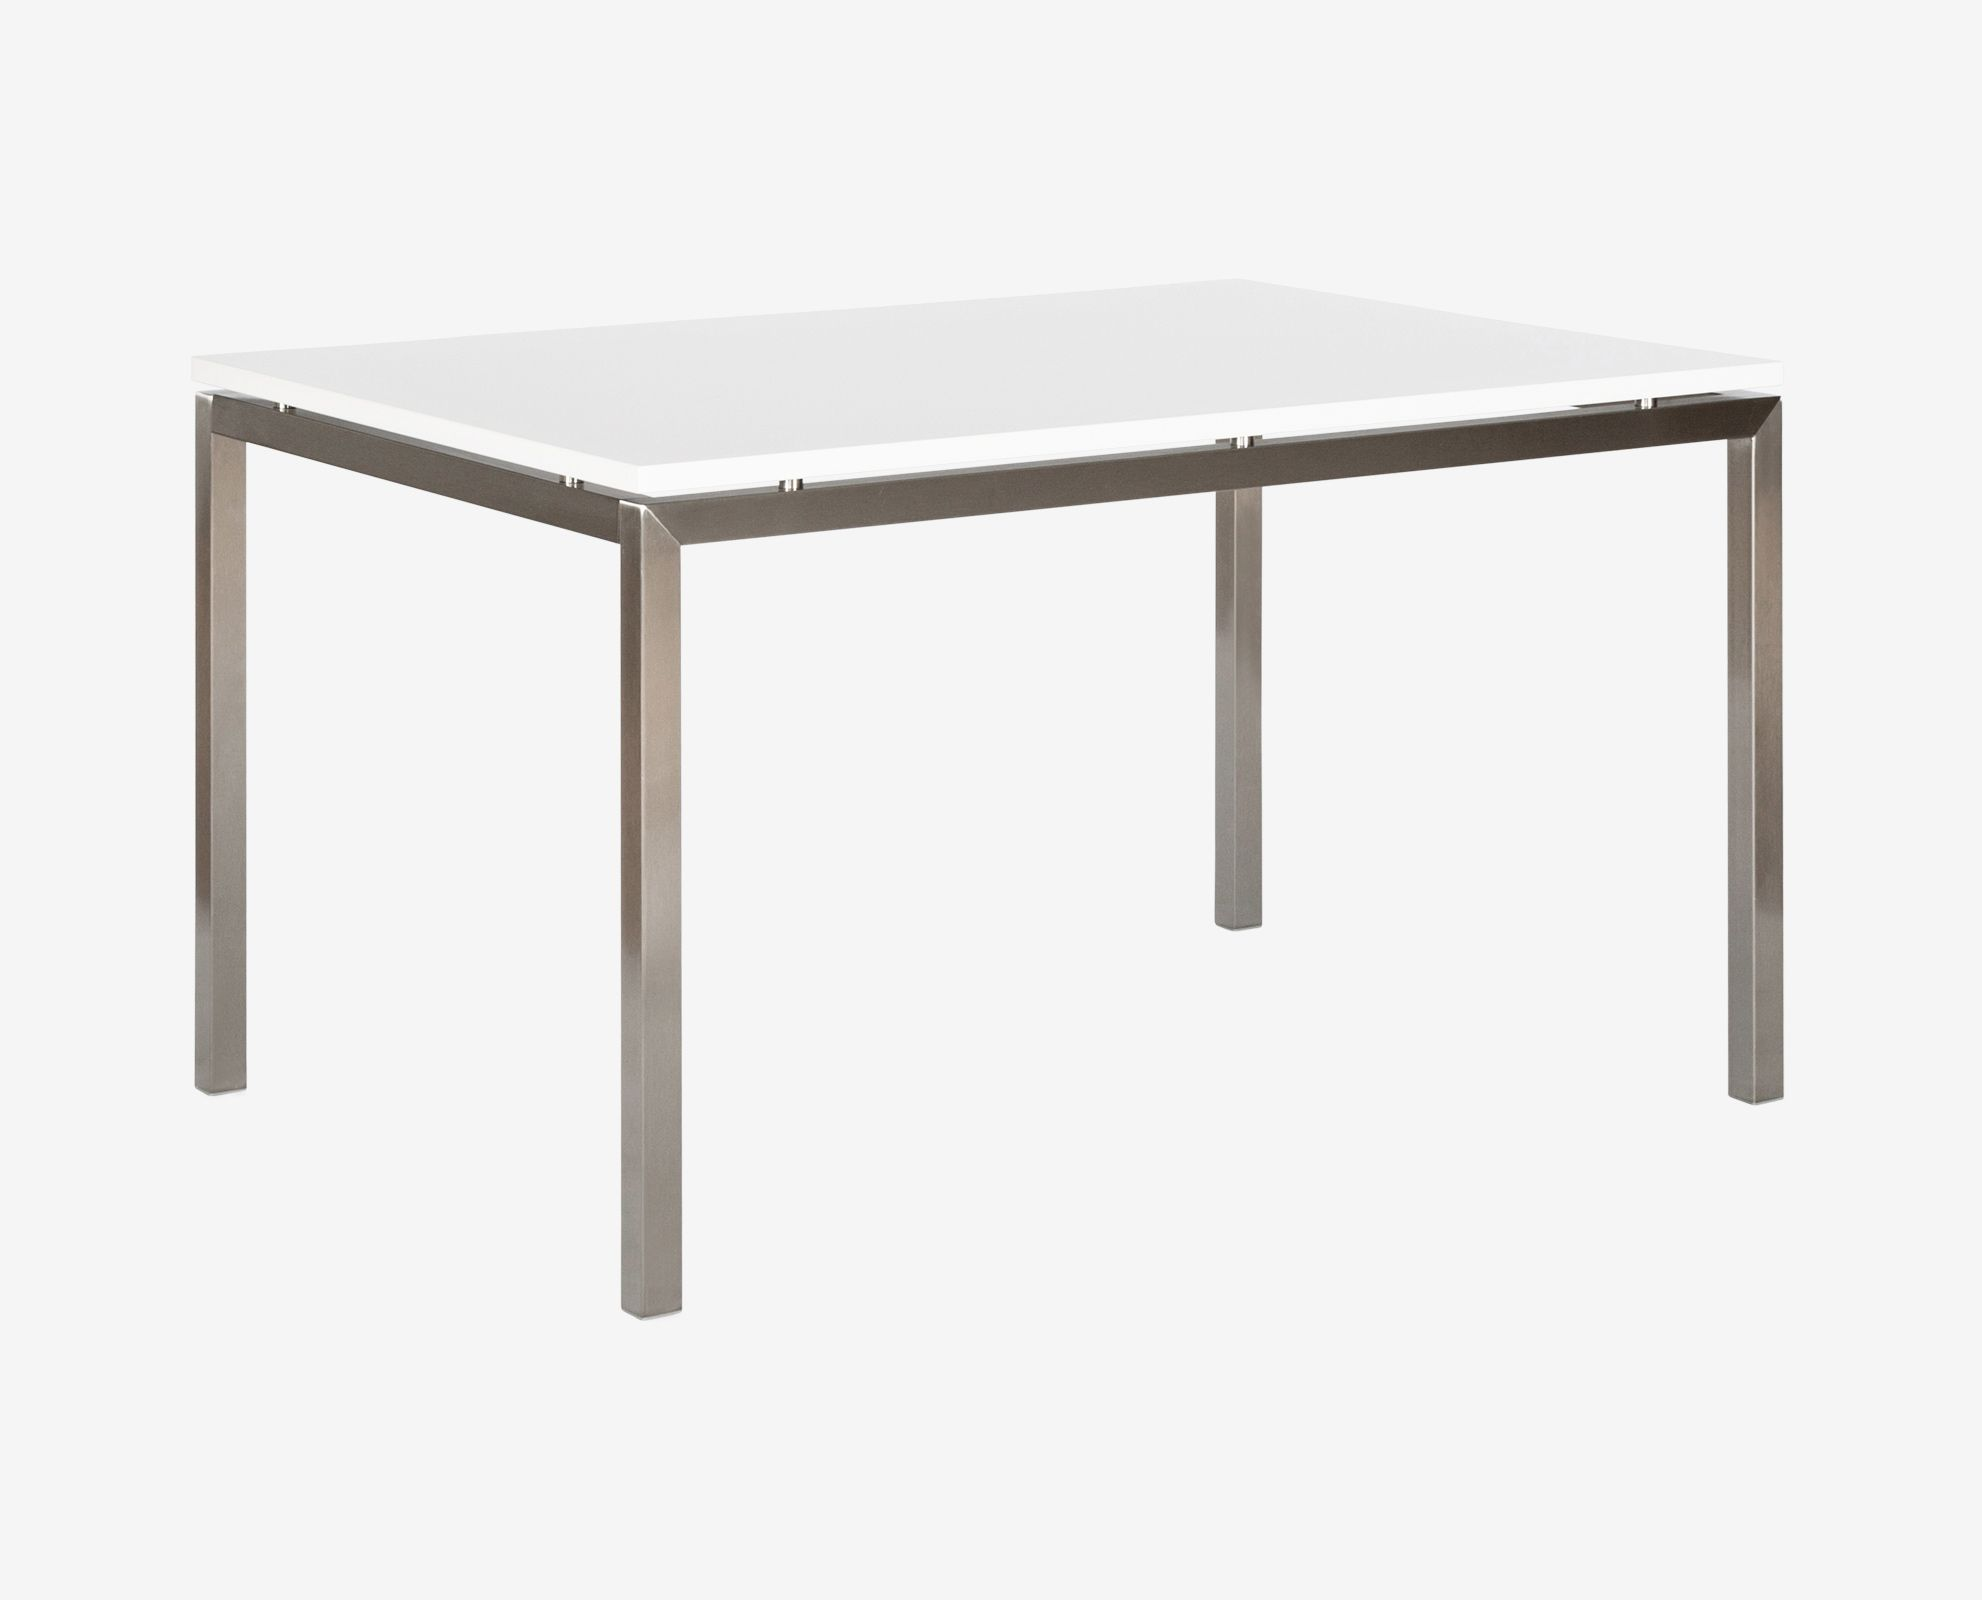 Tholea 51 Tables Scandinavian Designs Scandinavian Design Table Dining Table